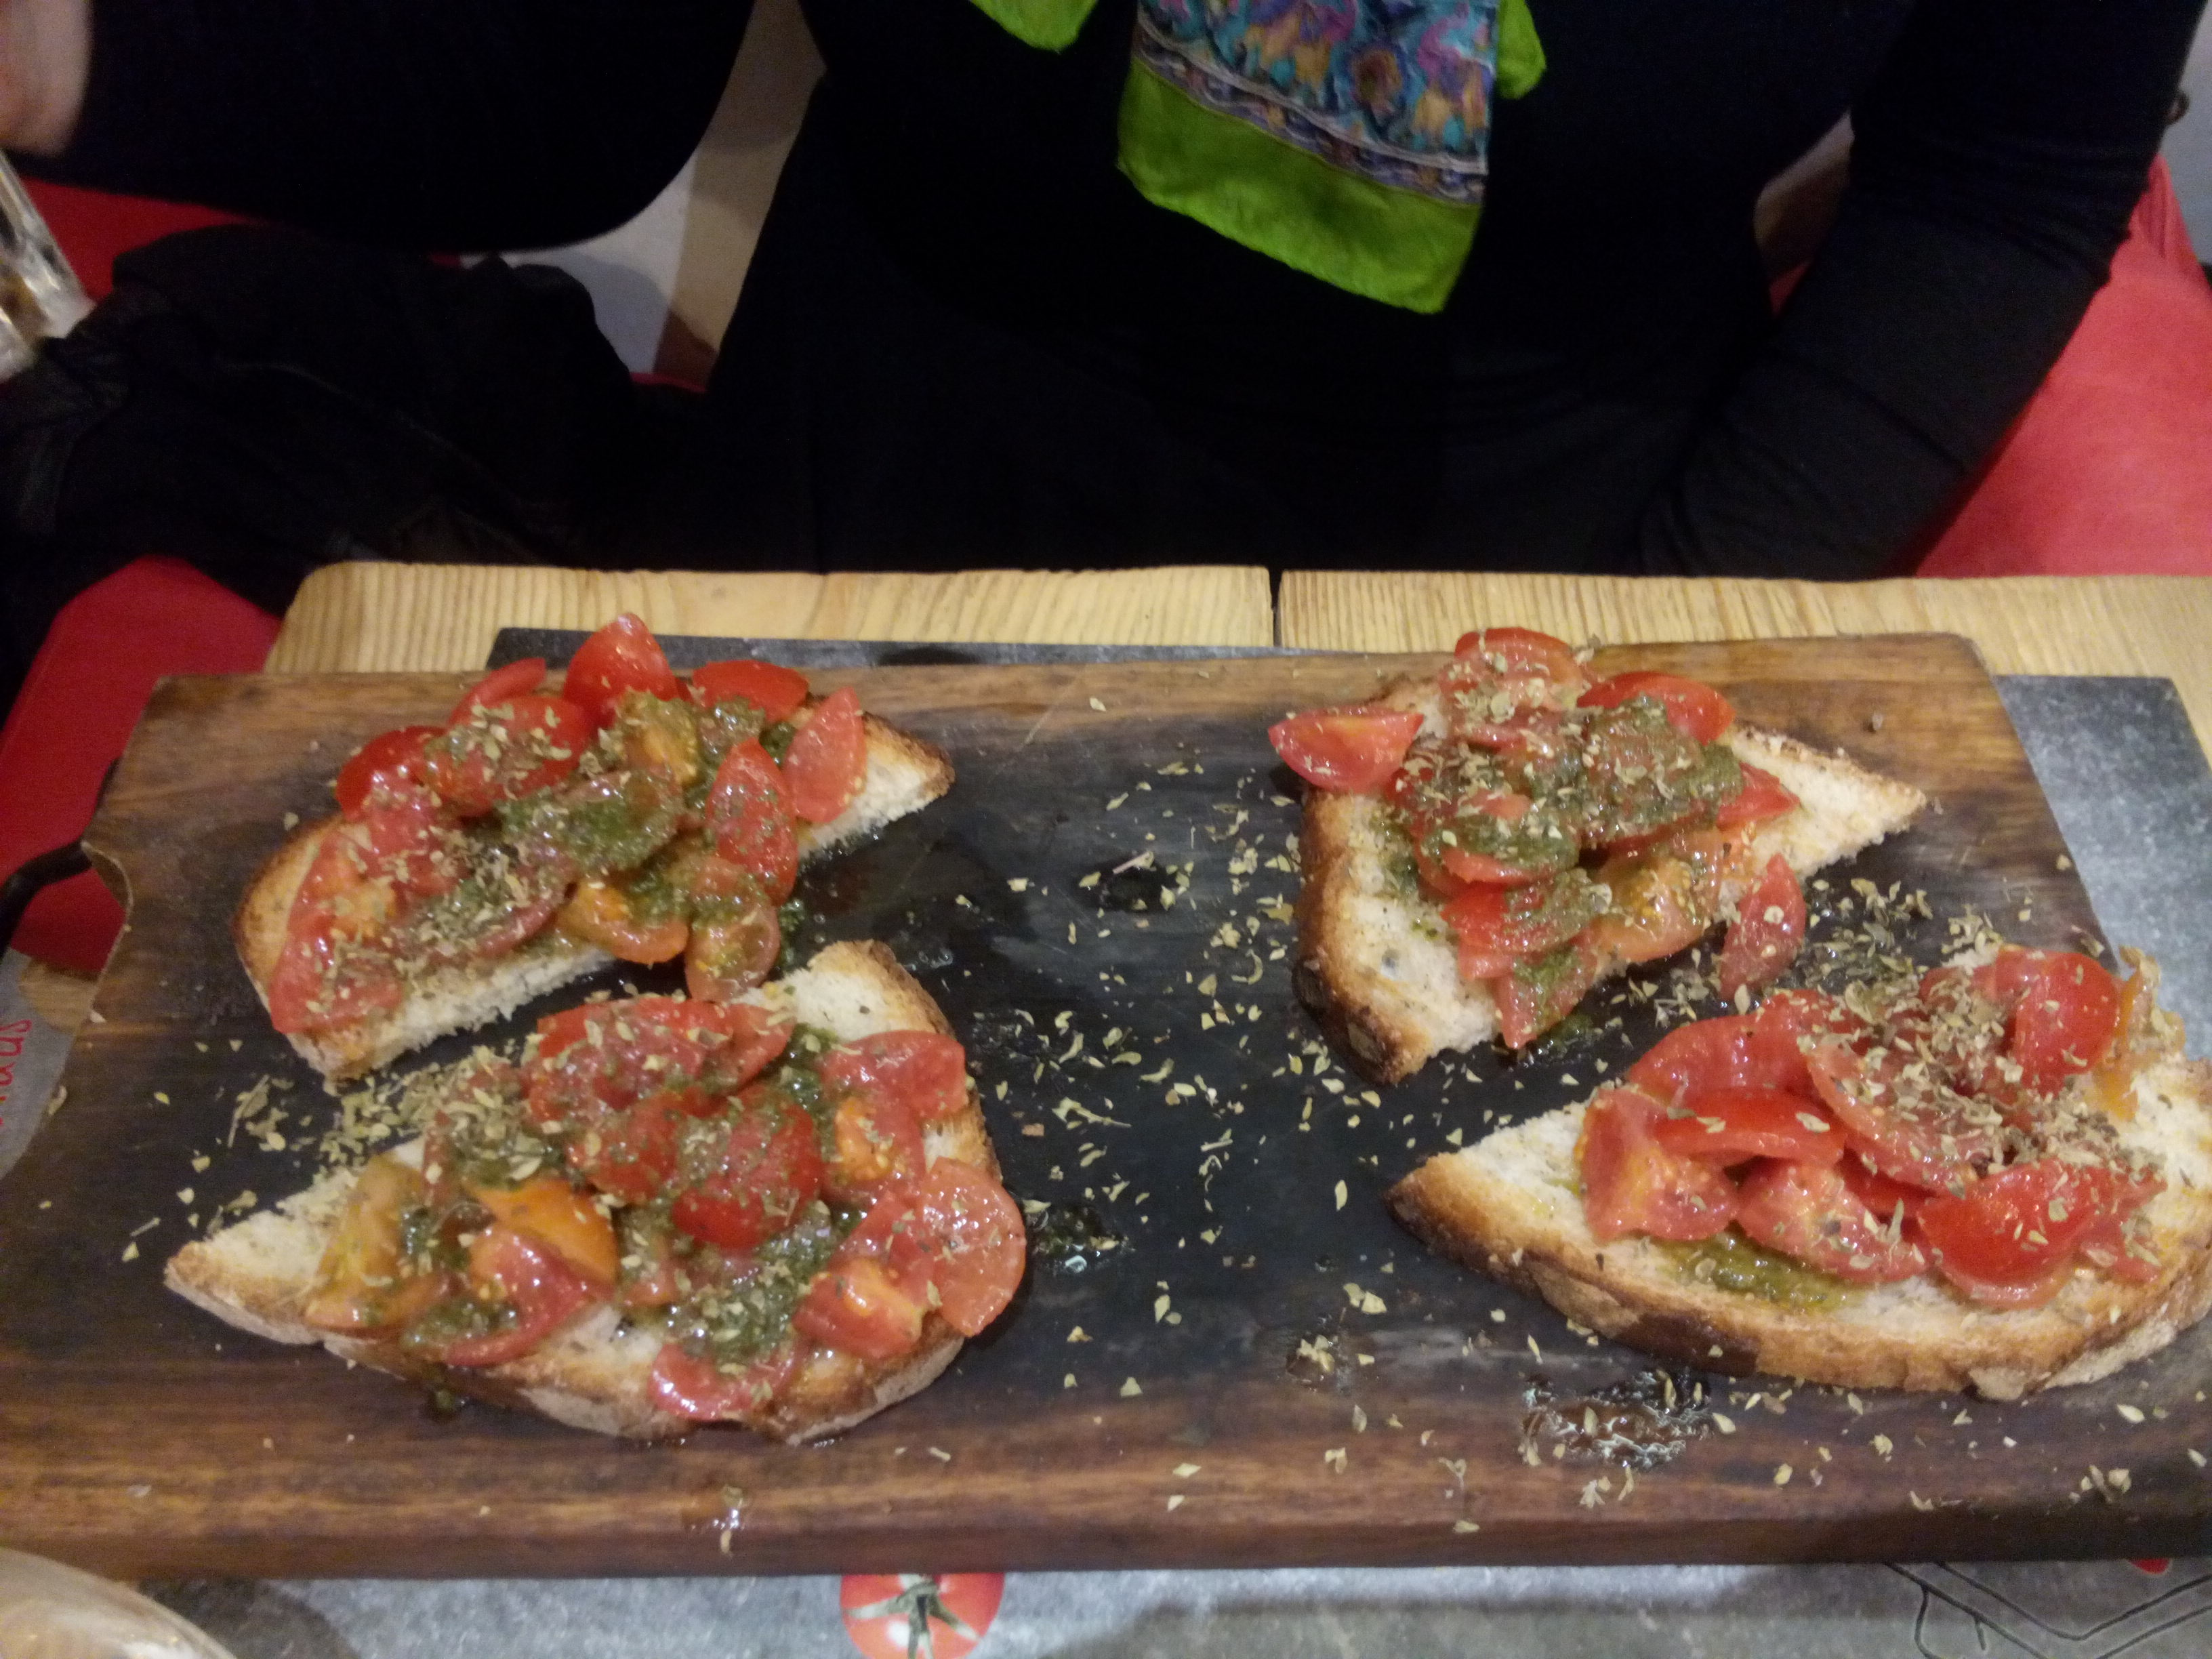 A wooden board with four pieces of tomato-topped bruschetta